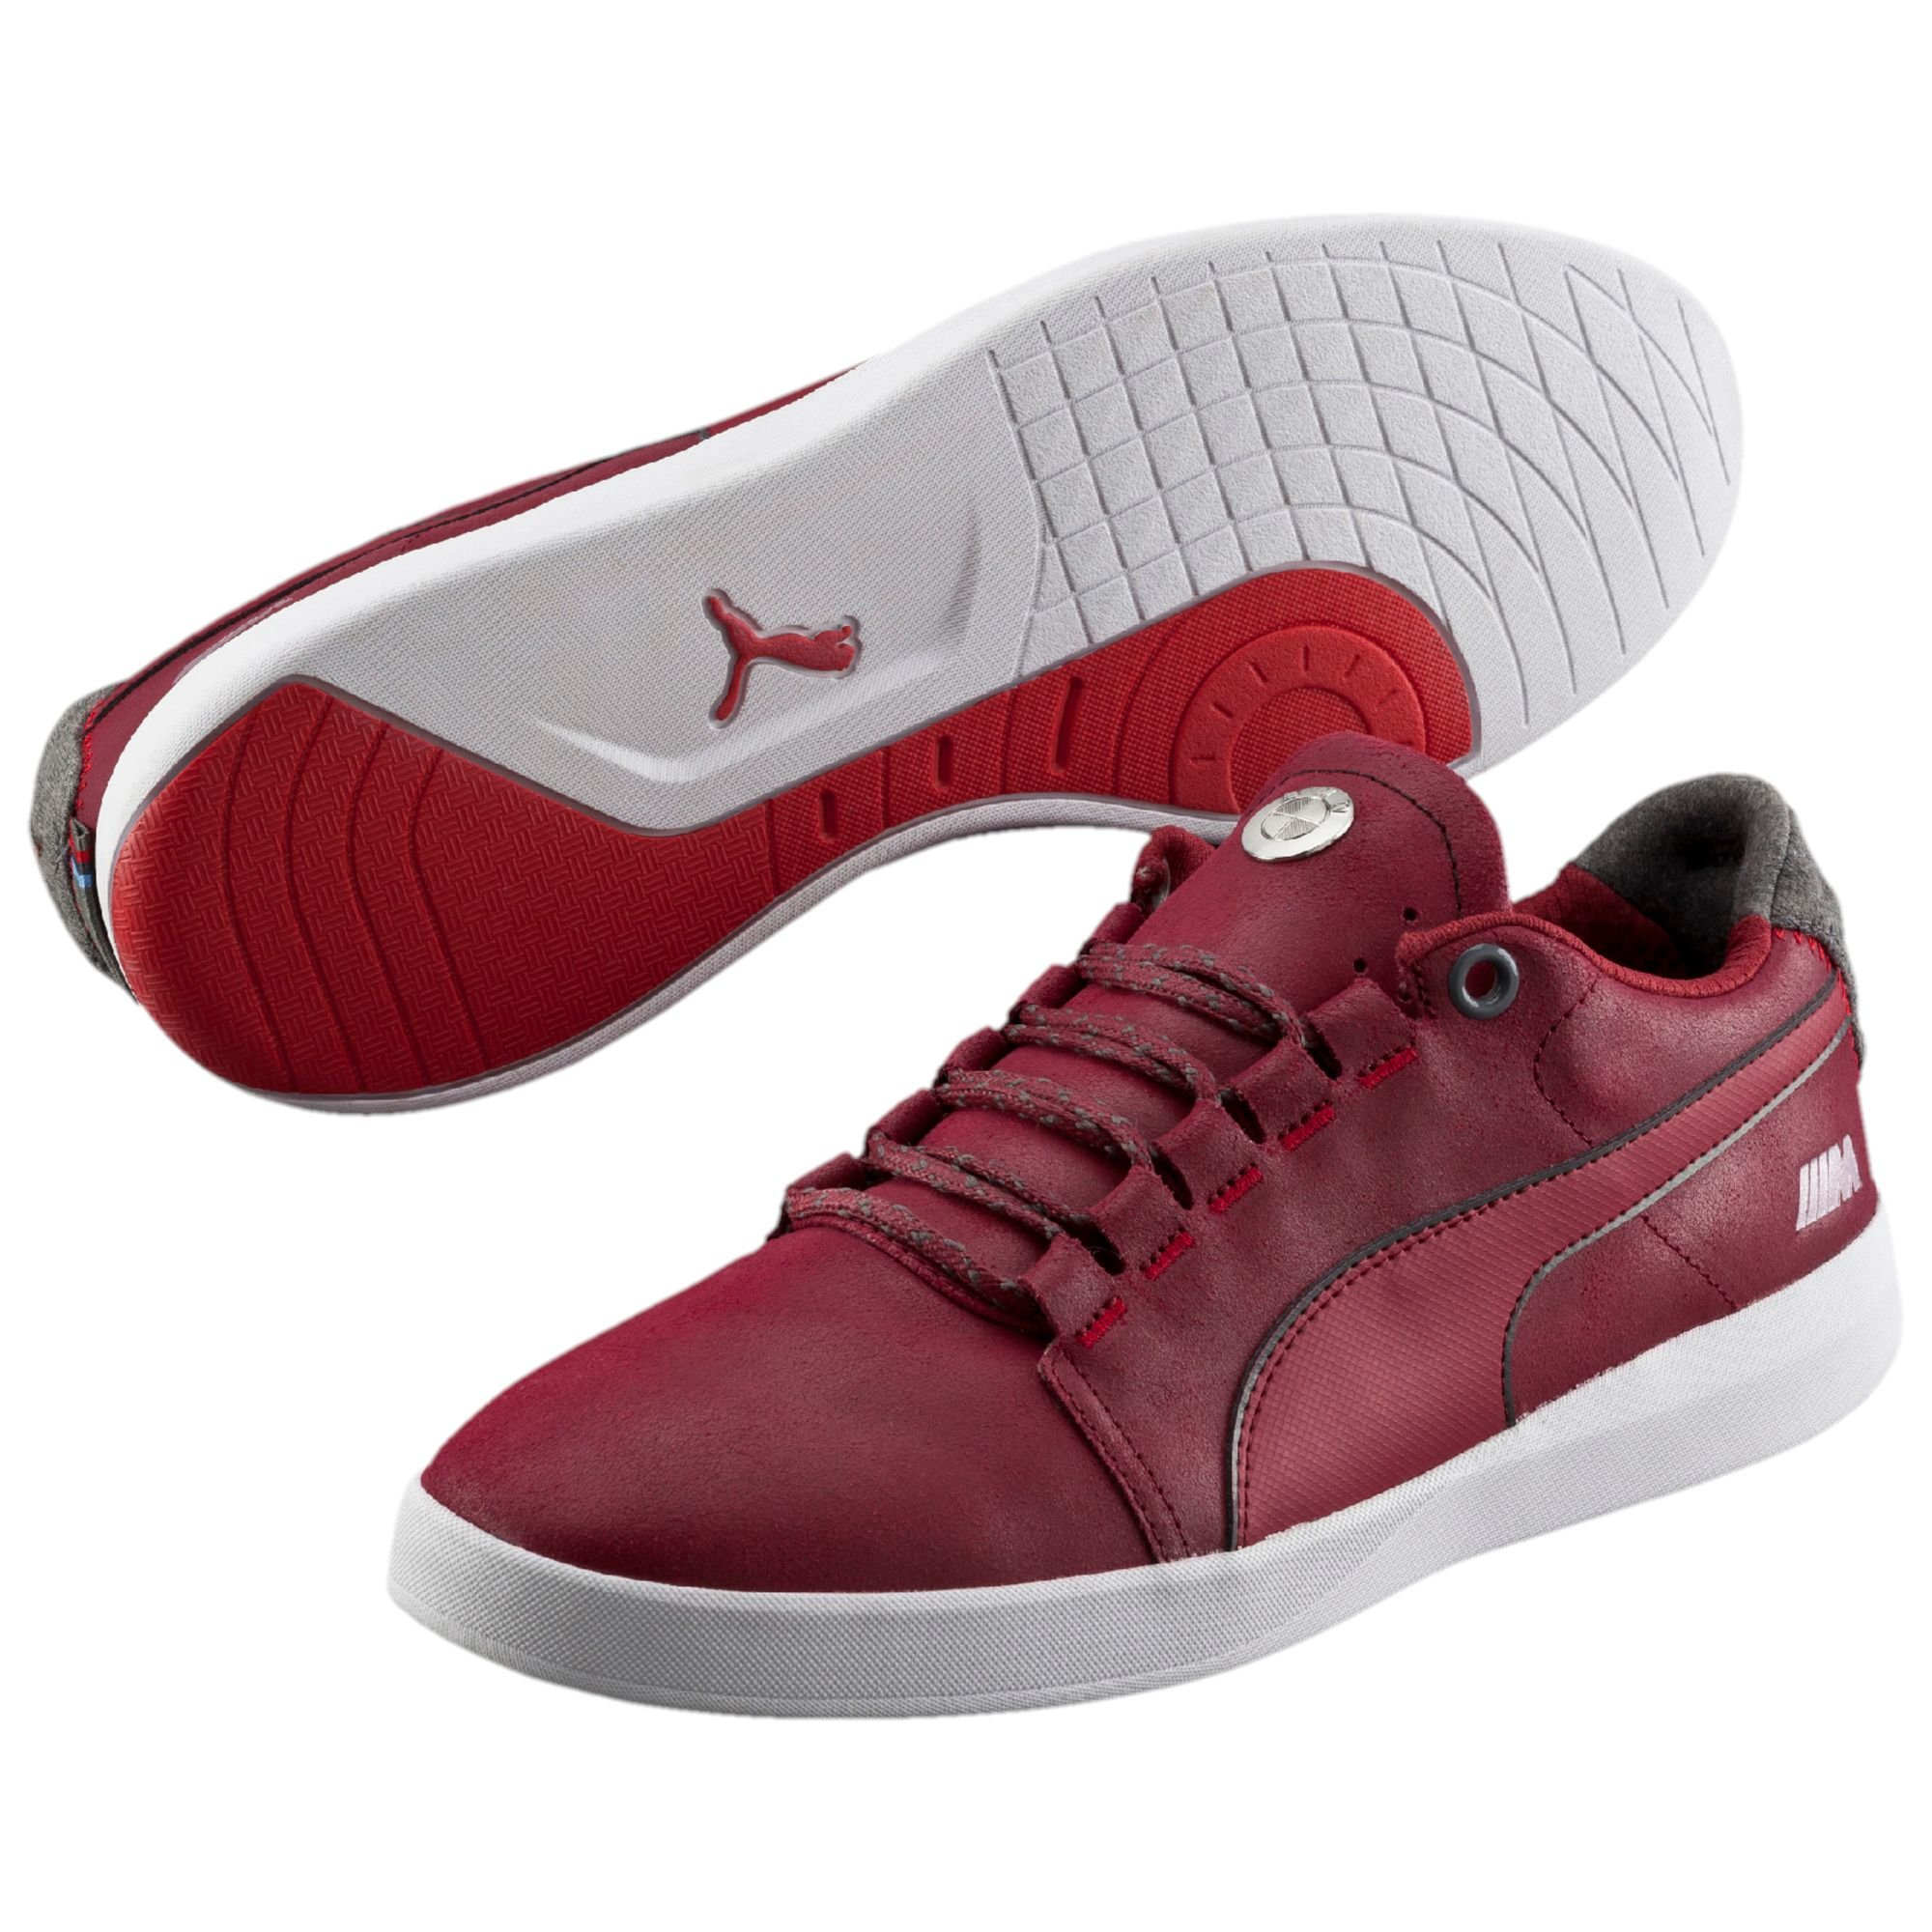 5f592a786a7e Puma Lyst Bmw For Grille Red Men Men s Shoes In 6UfzWUFqw